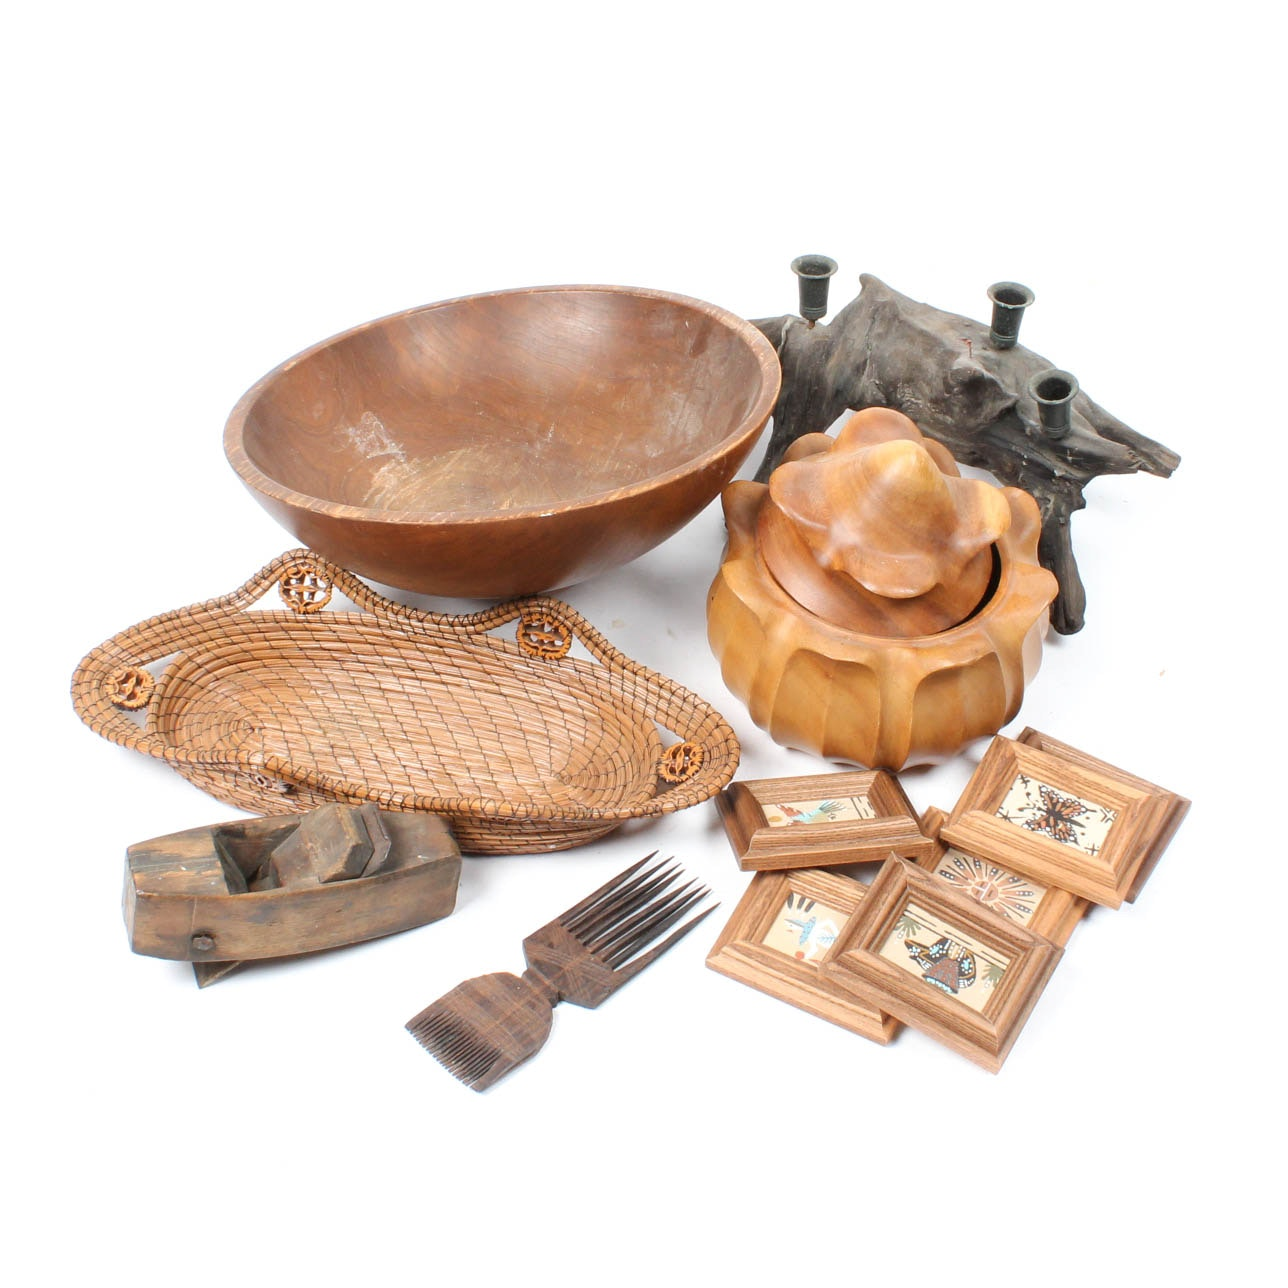 Woodenware Decor Grouping